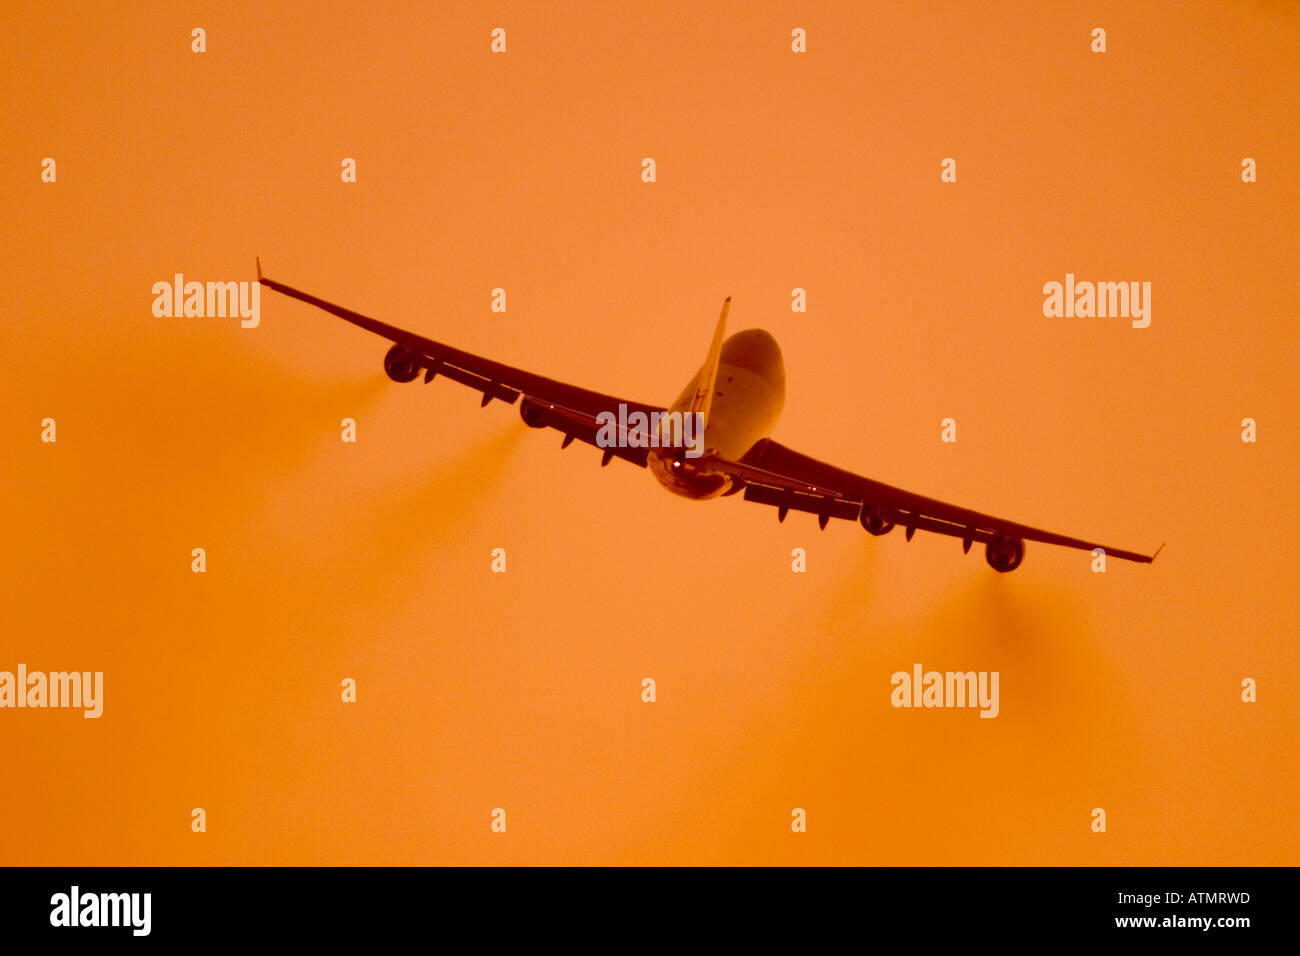 Commercial jet flying with smoke comeing from the engines - Stock Image